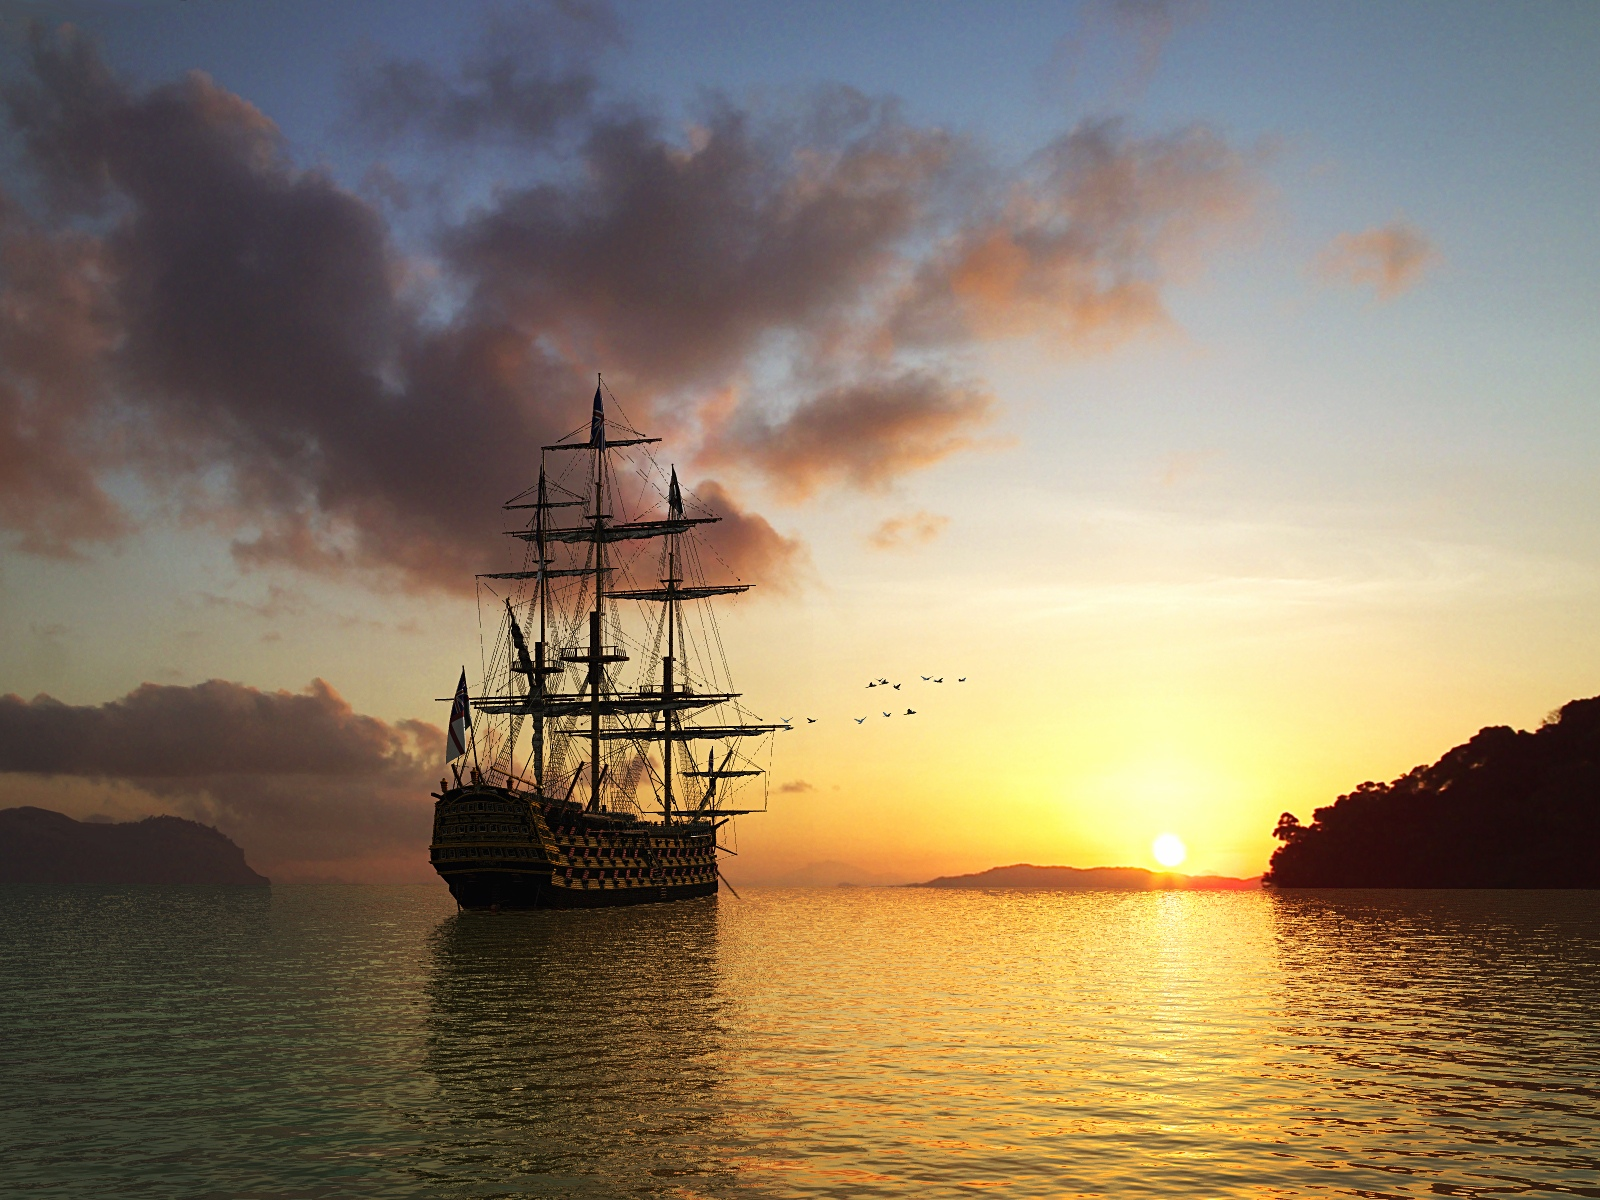 3D Sailing Ship 1600 x 1200 Pixel HD Wallpapers Part 1 1600x1200